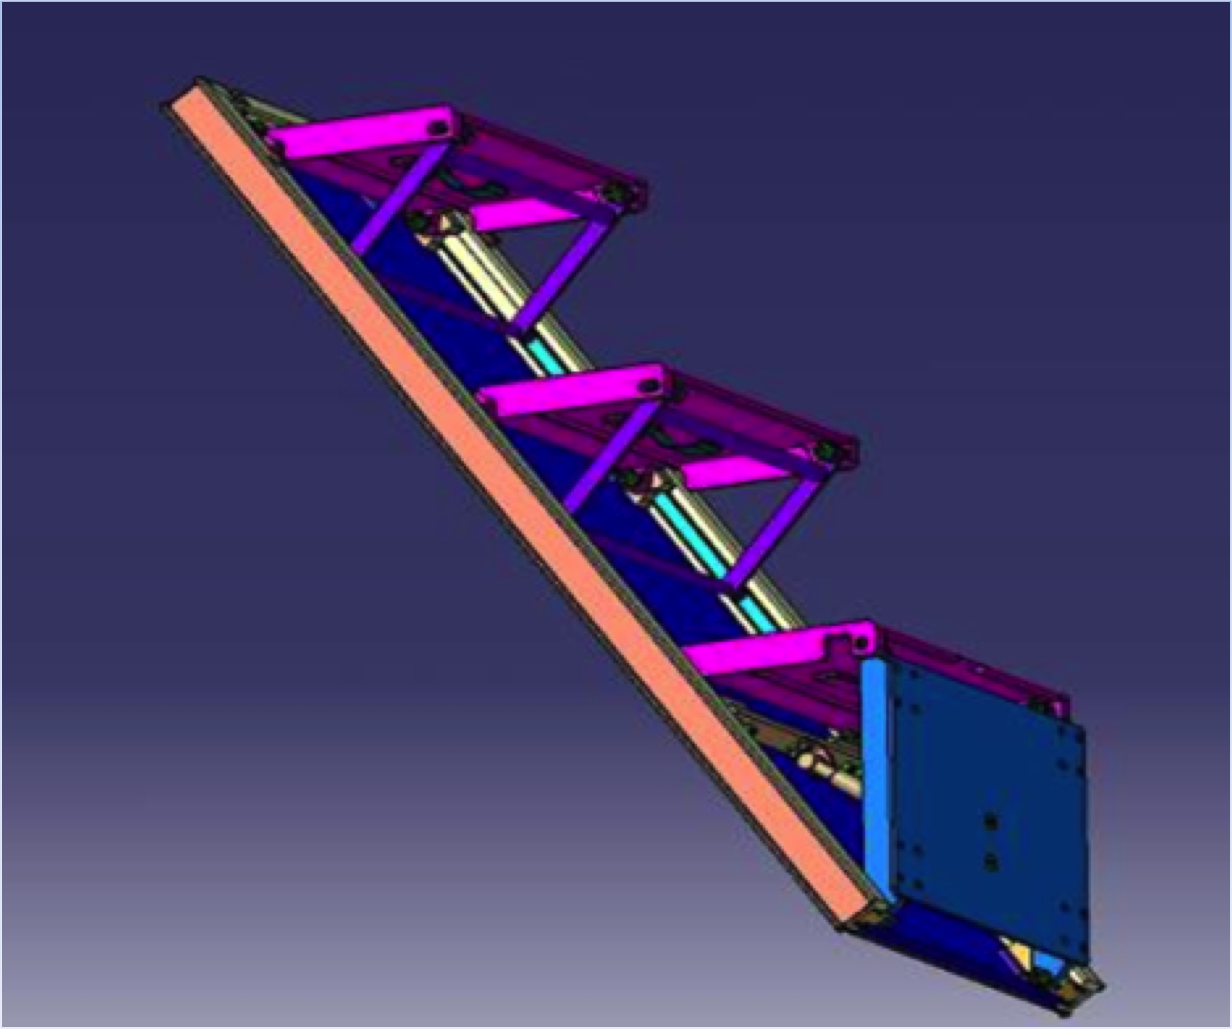 Folding stairs arianetech ingenieria for Folding stairs